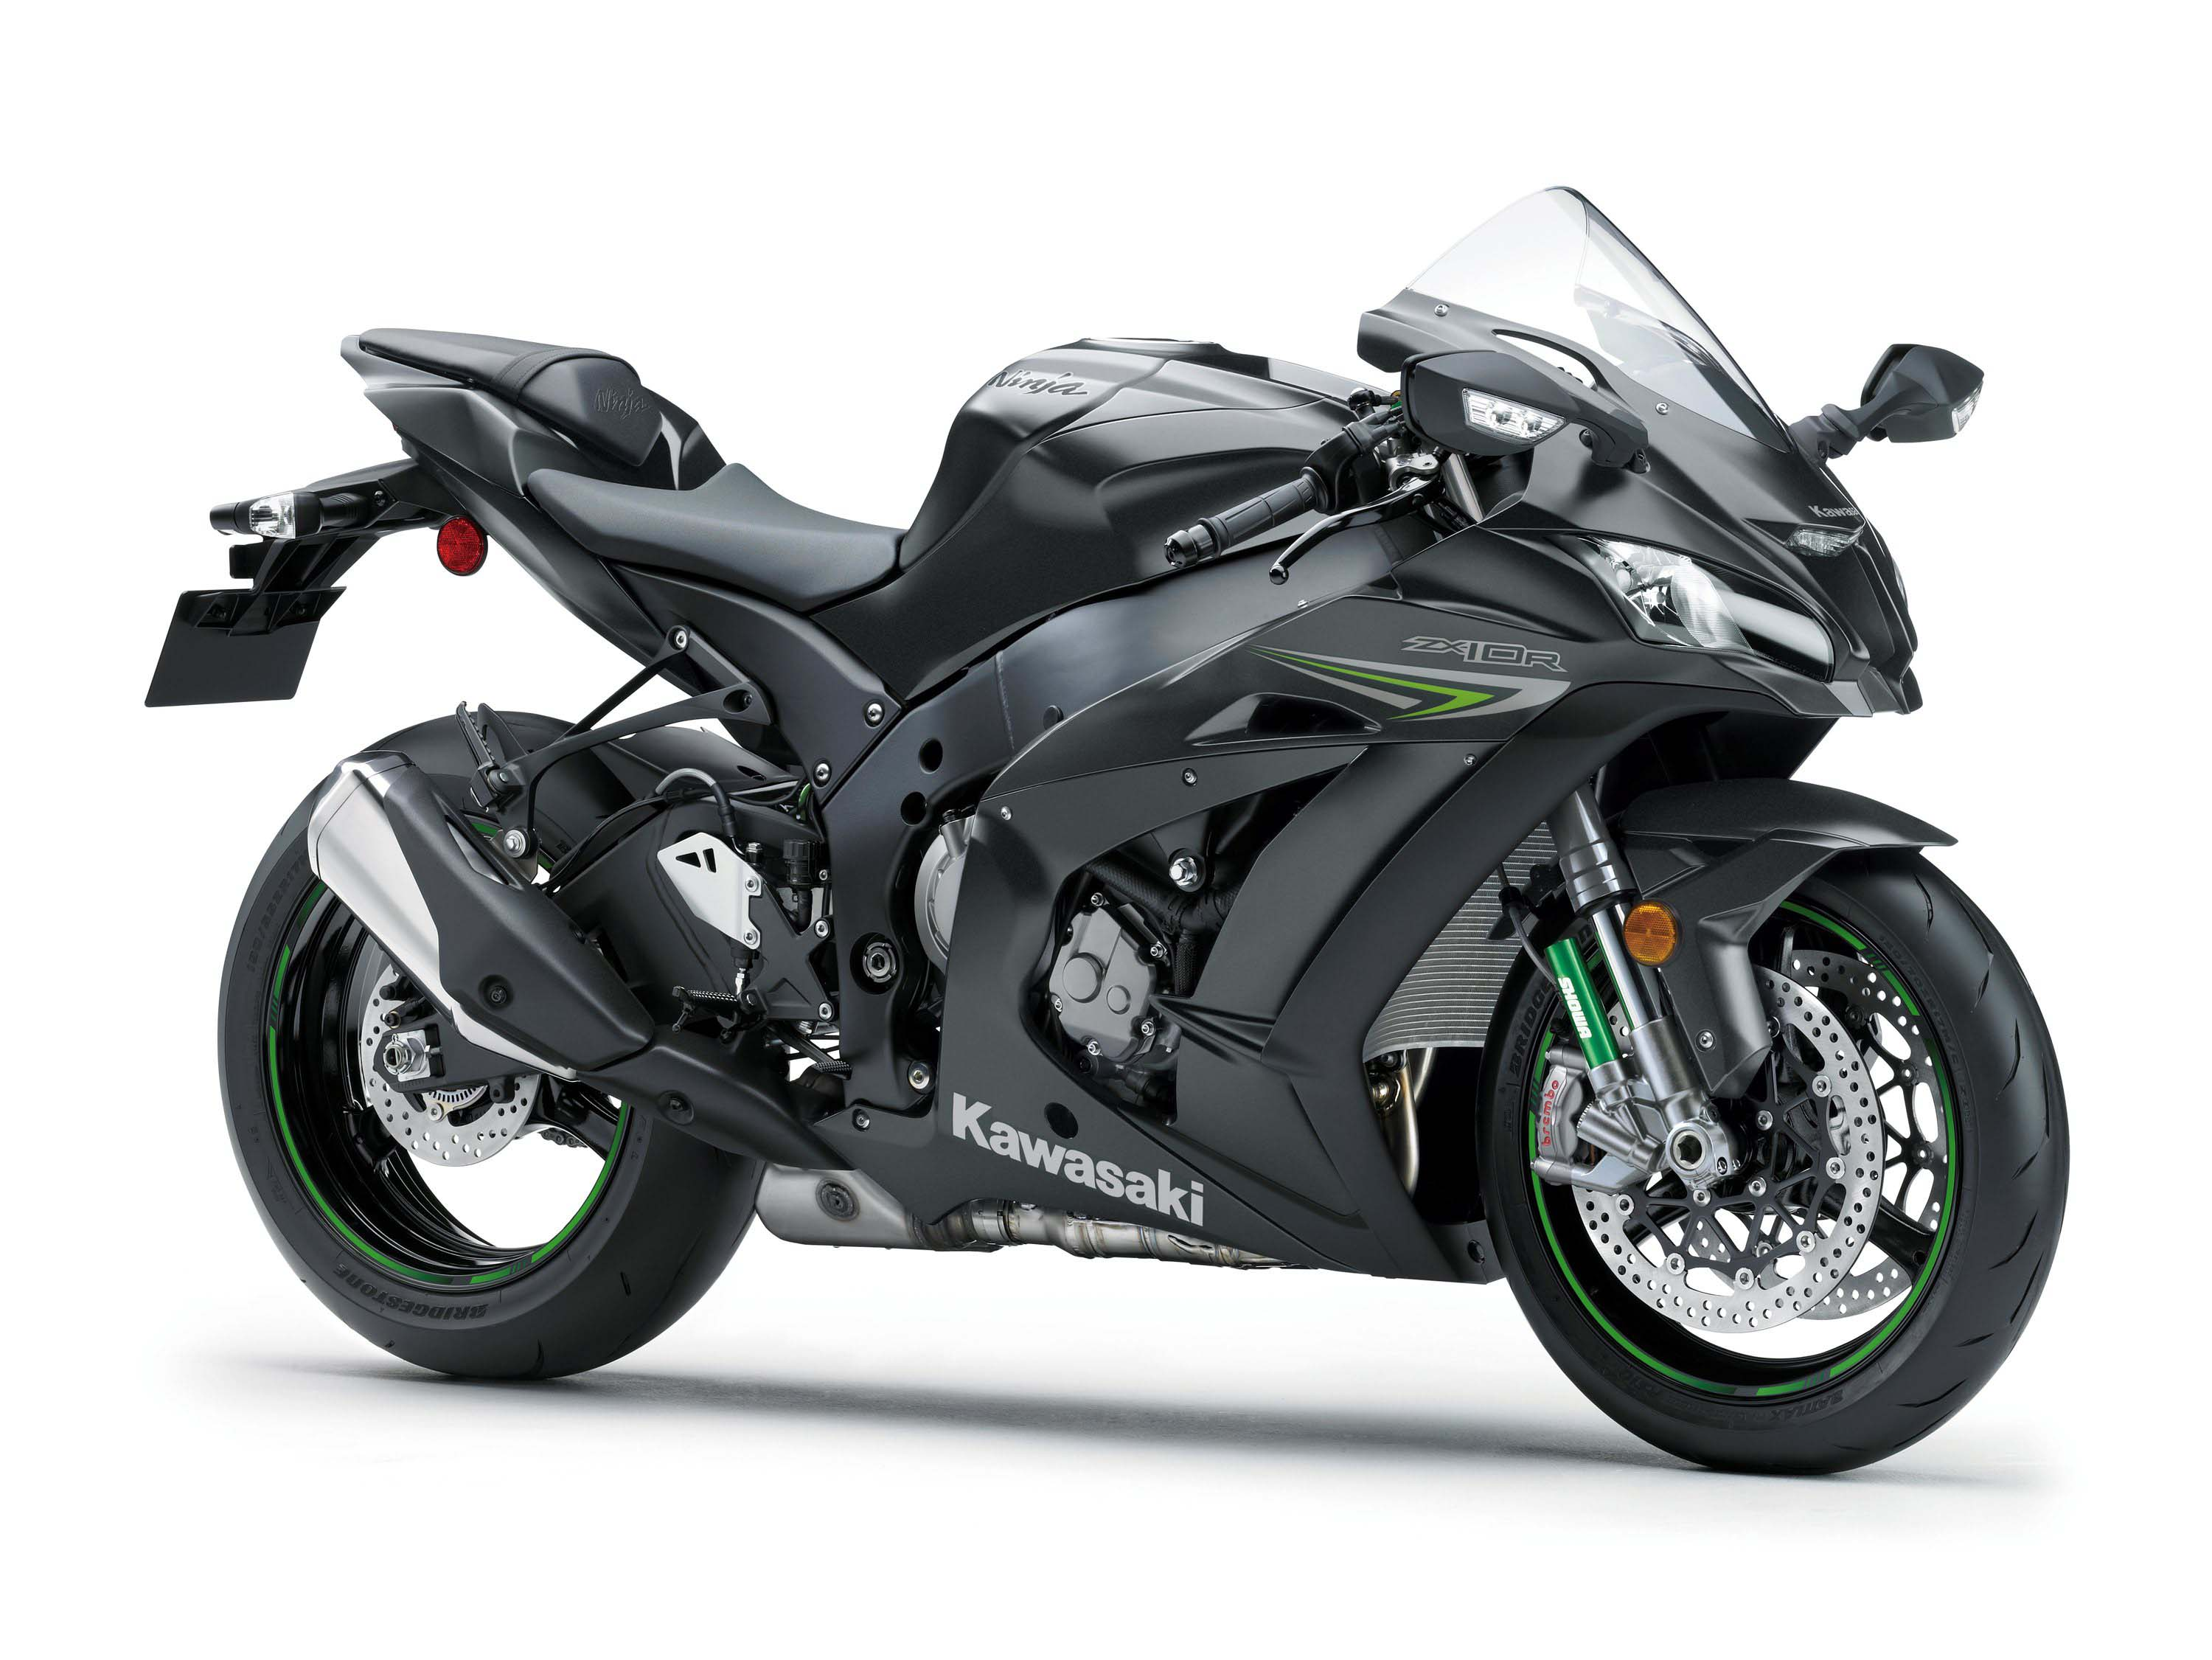 2016 kawasaki ninja zx 10r debuts with serious updates asphalt rubber. Black Bedroom Furniture Sets. Home Design Ideas